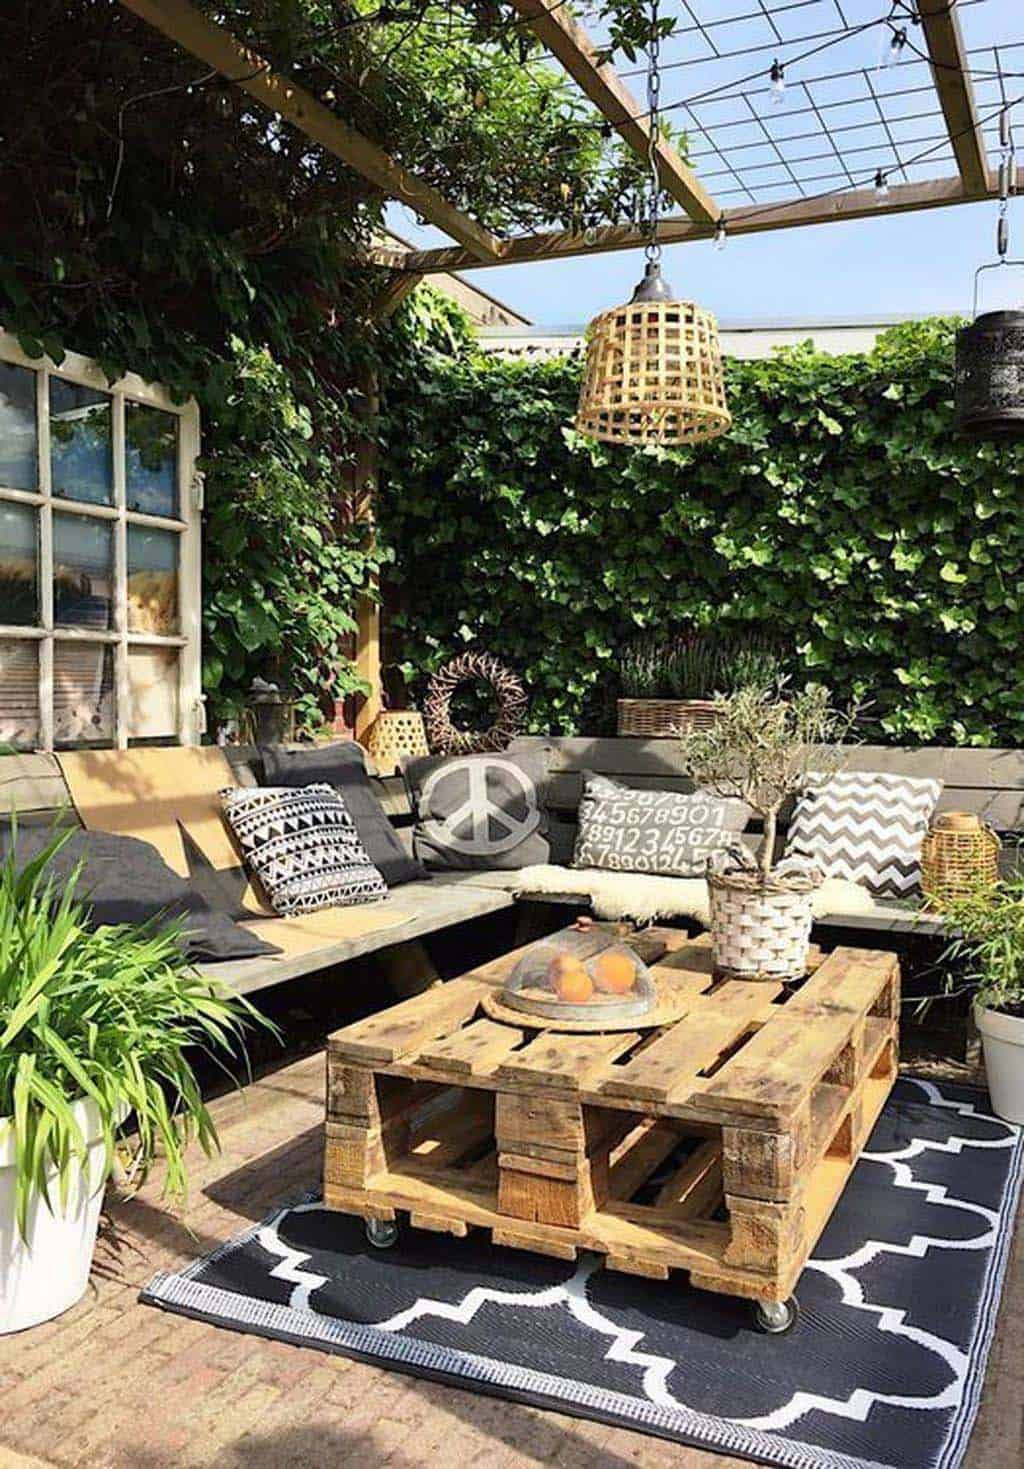 33 Fabulous Ideas For Creating Beautiful Outdoor Living Spaces on Garden Living Space id=94770